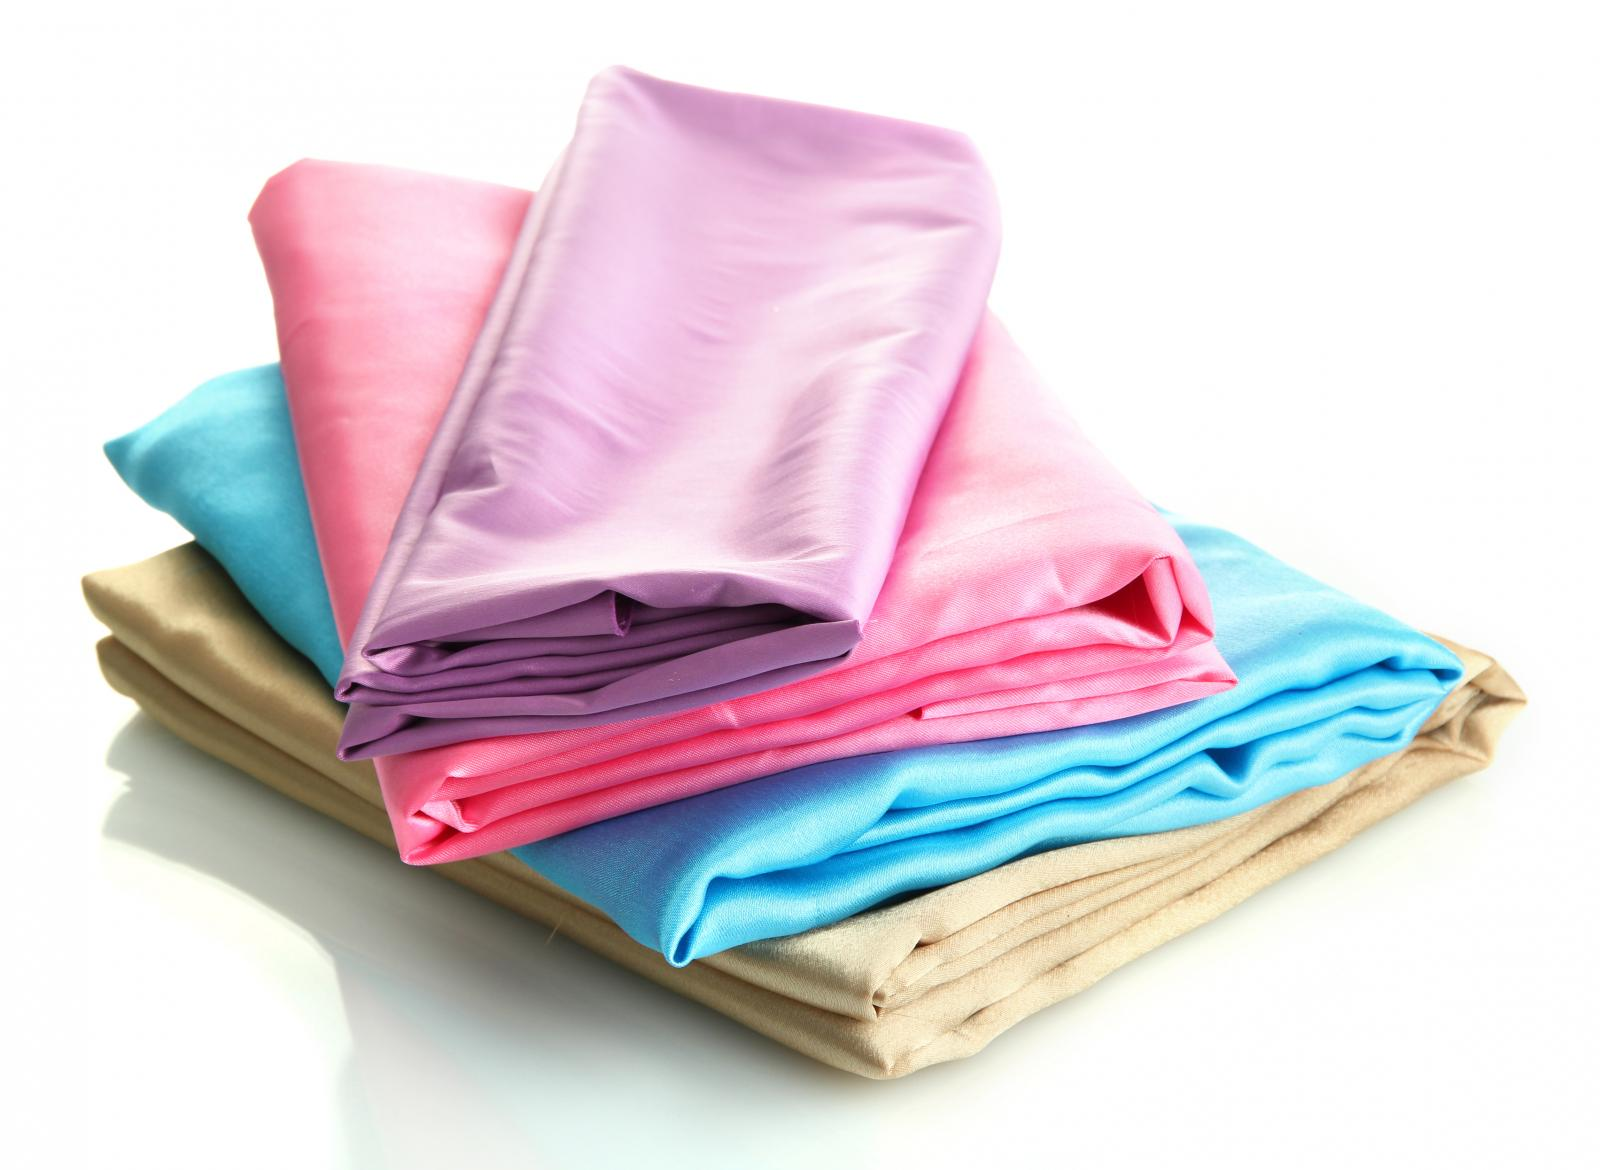 Silk fabric folded and ready for climate controlled storage